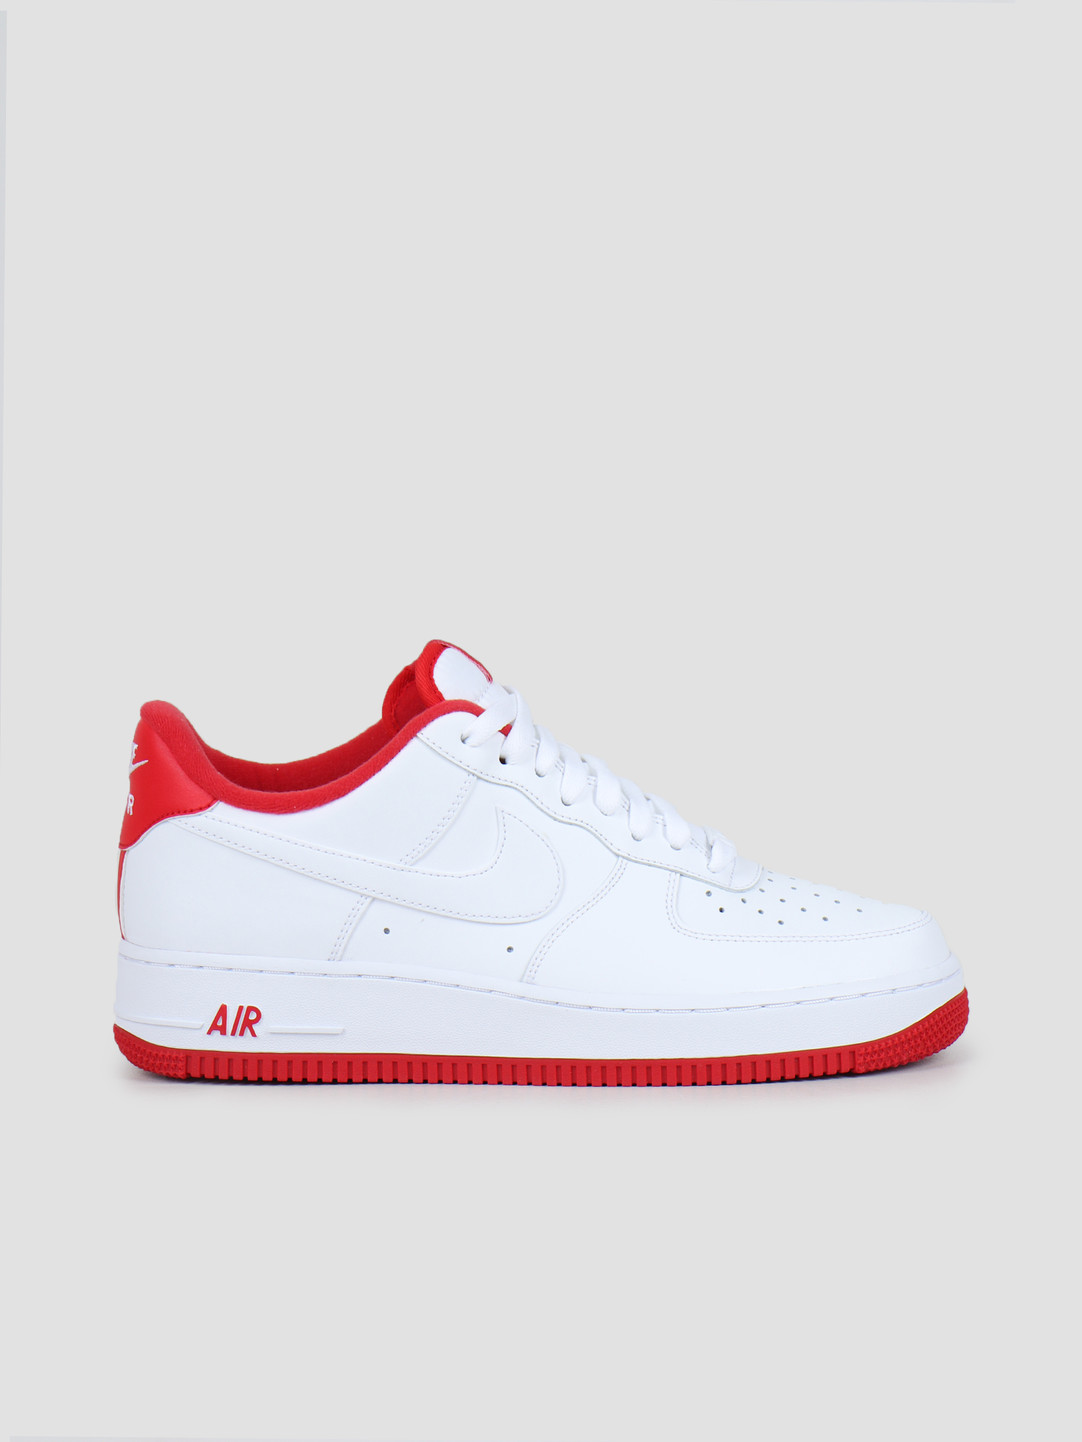 Nike Air Force 1 Hyper Blue and University Red | Nike air